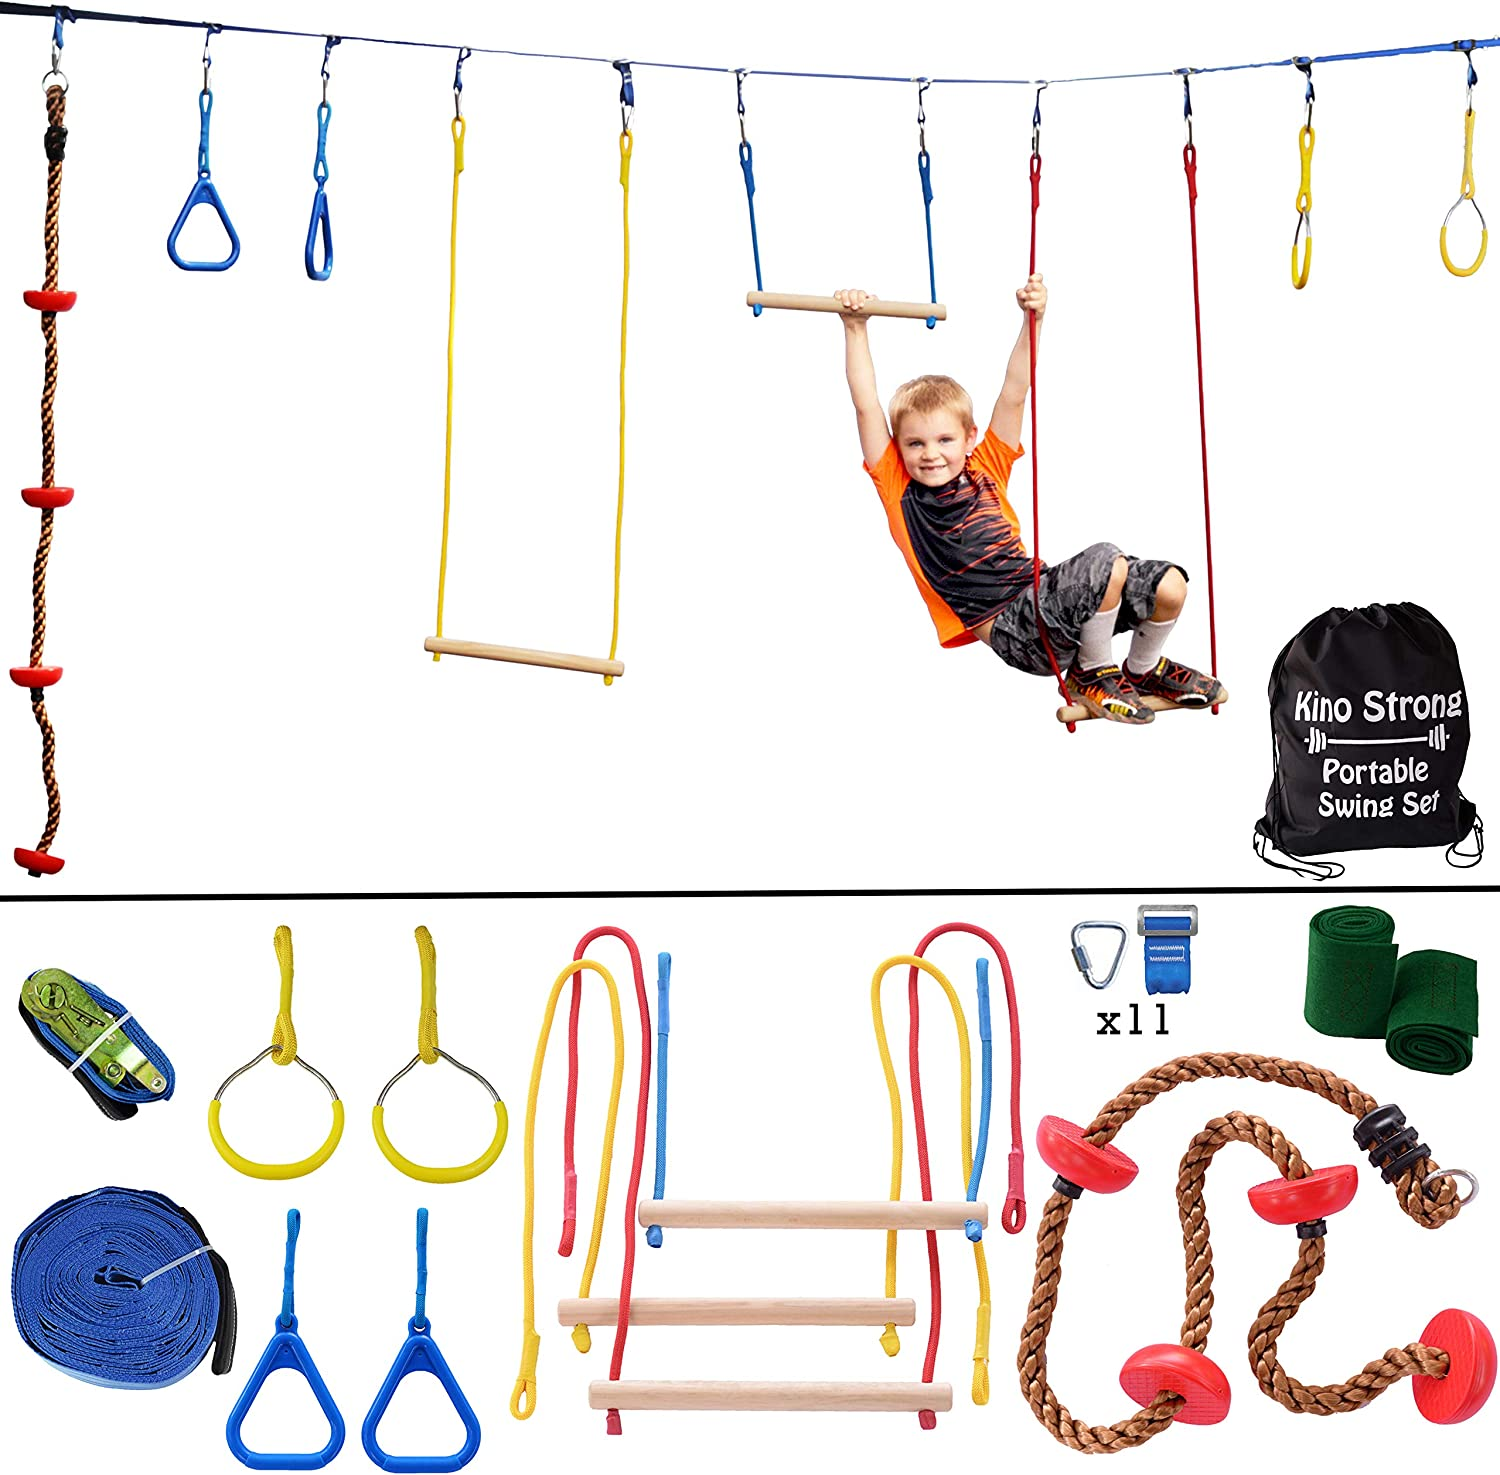 Ninja Hanging Obstacle Course - Portable 40' Slackline Monkey Bar Kit with 8 Swinging Obstacles - Climbing Rope, 4 Rings, 3 Monkey Bars - 250lb Capacity Backyard Playground Equipment Swing Set